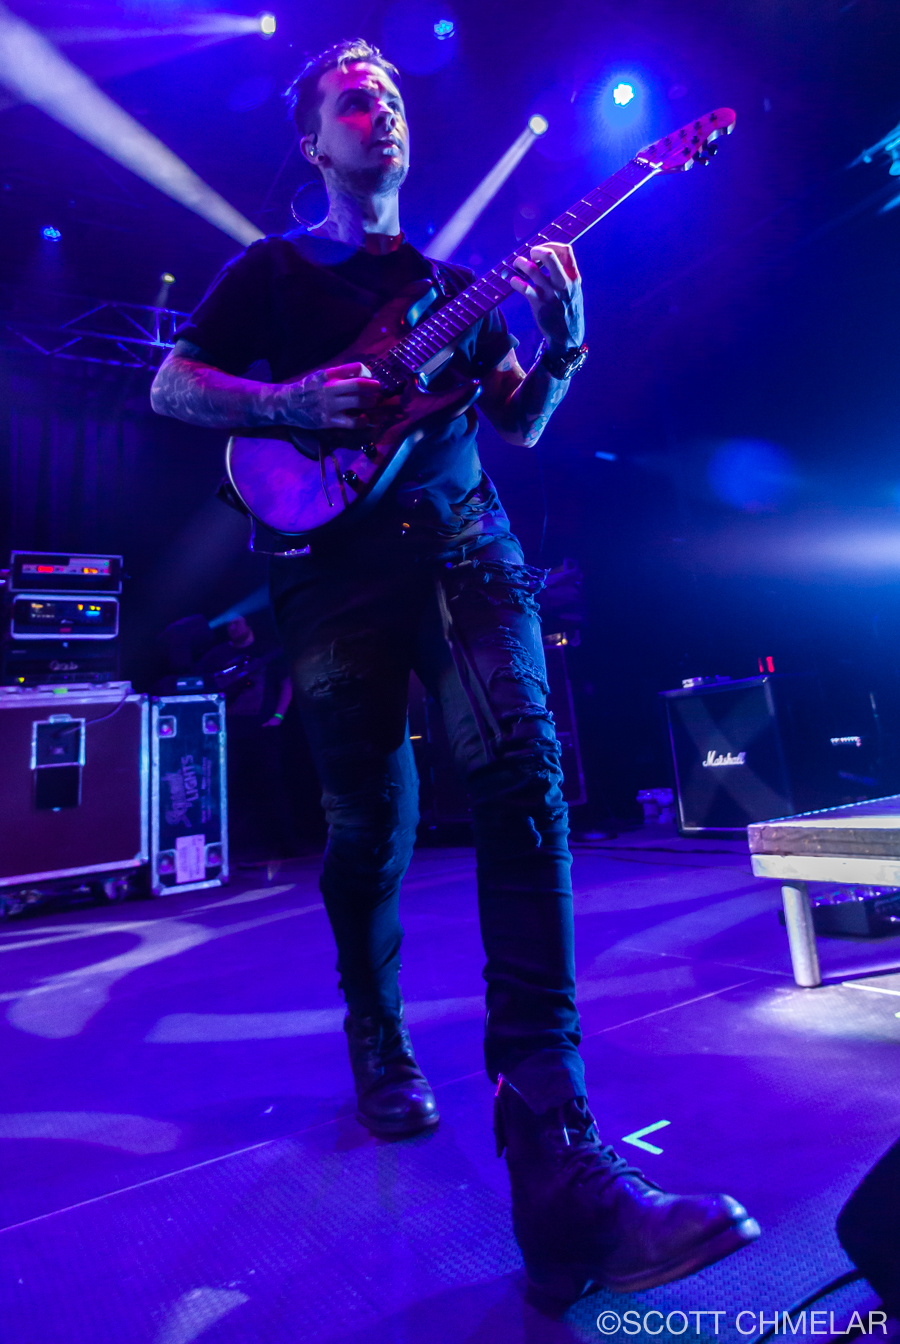 All That Remains at The Ritz Raleigh NC February 17, 2019